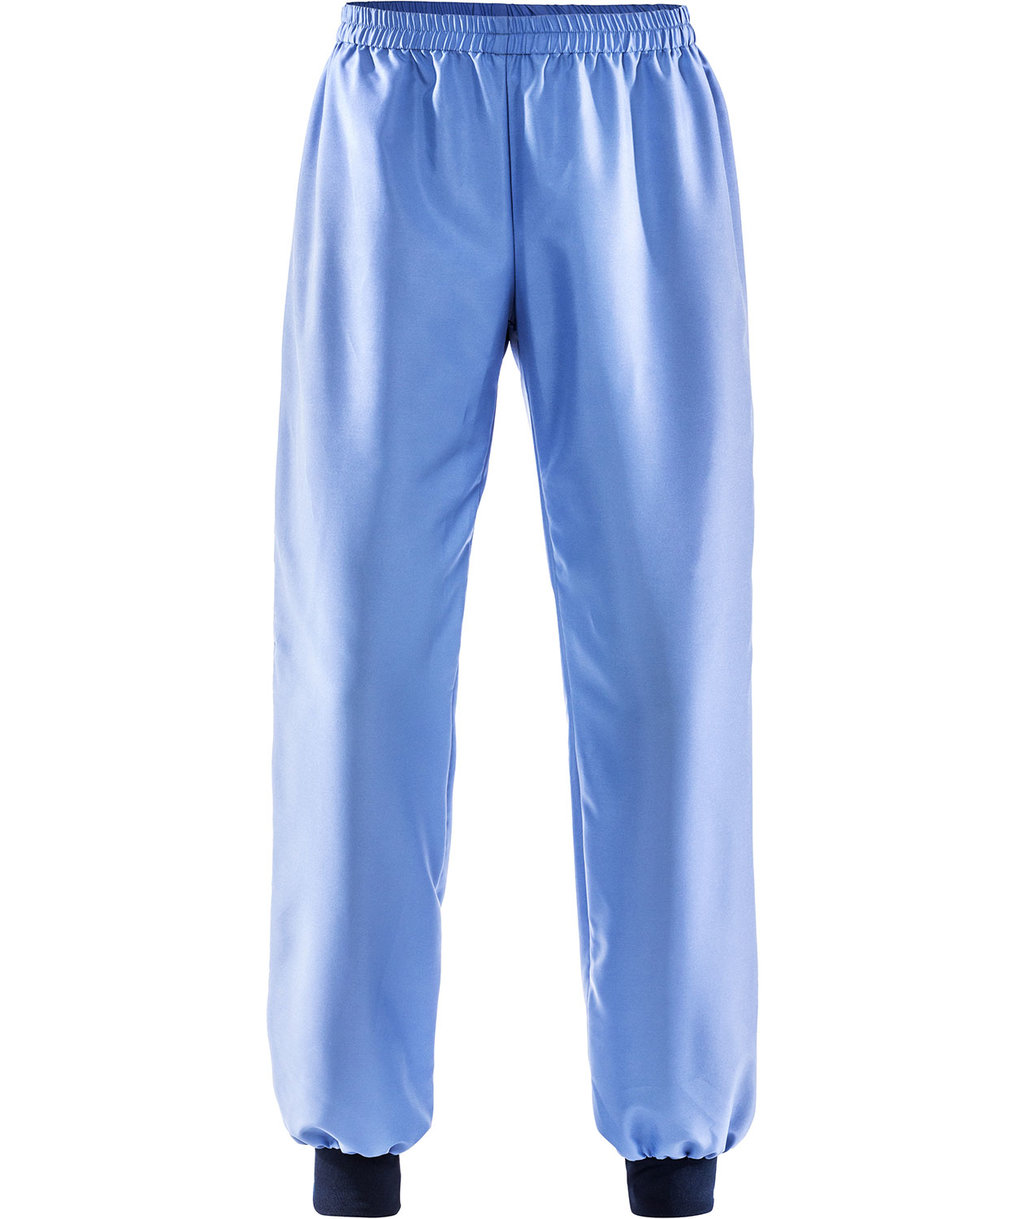 Fristads Cleanroom long johns 2R014, Middleblue